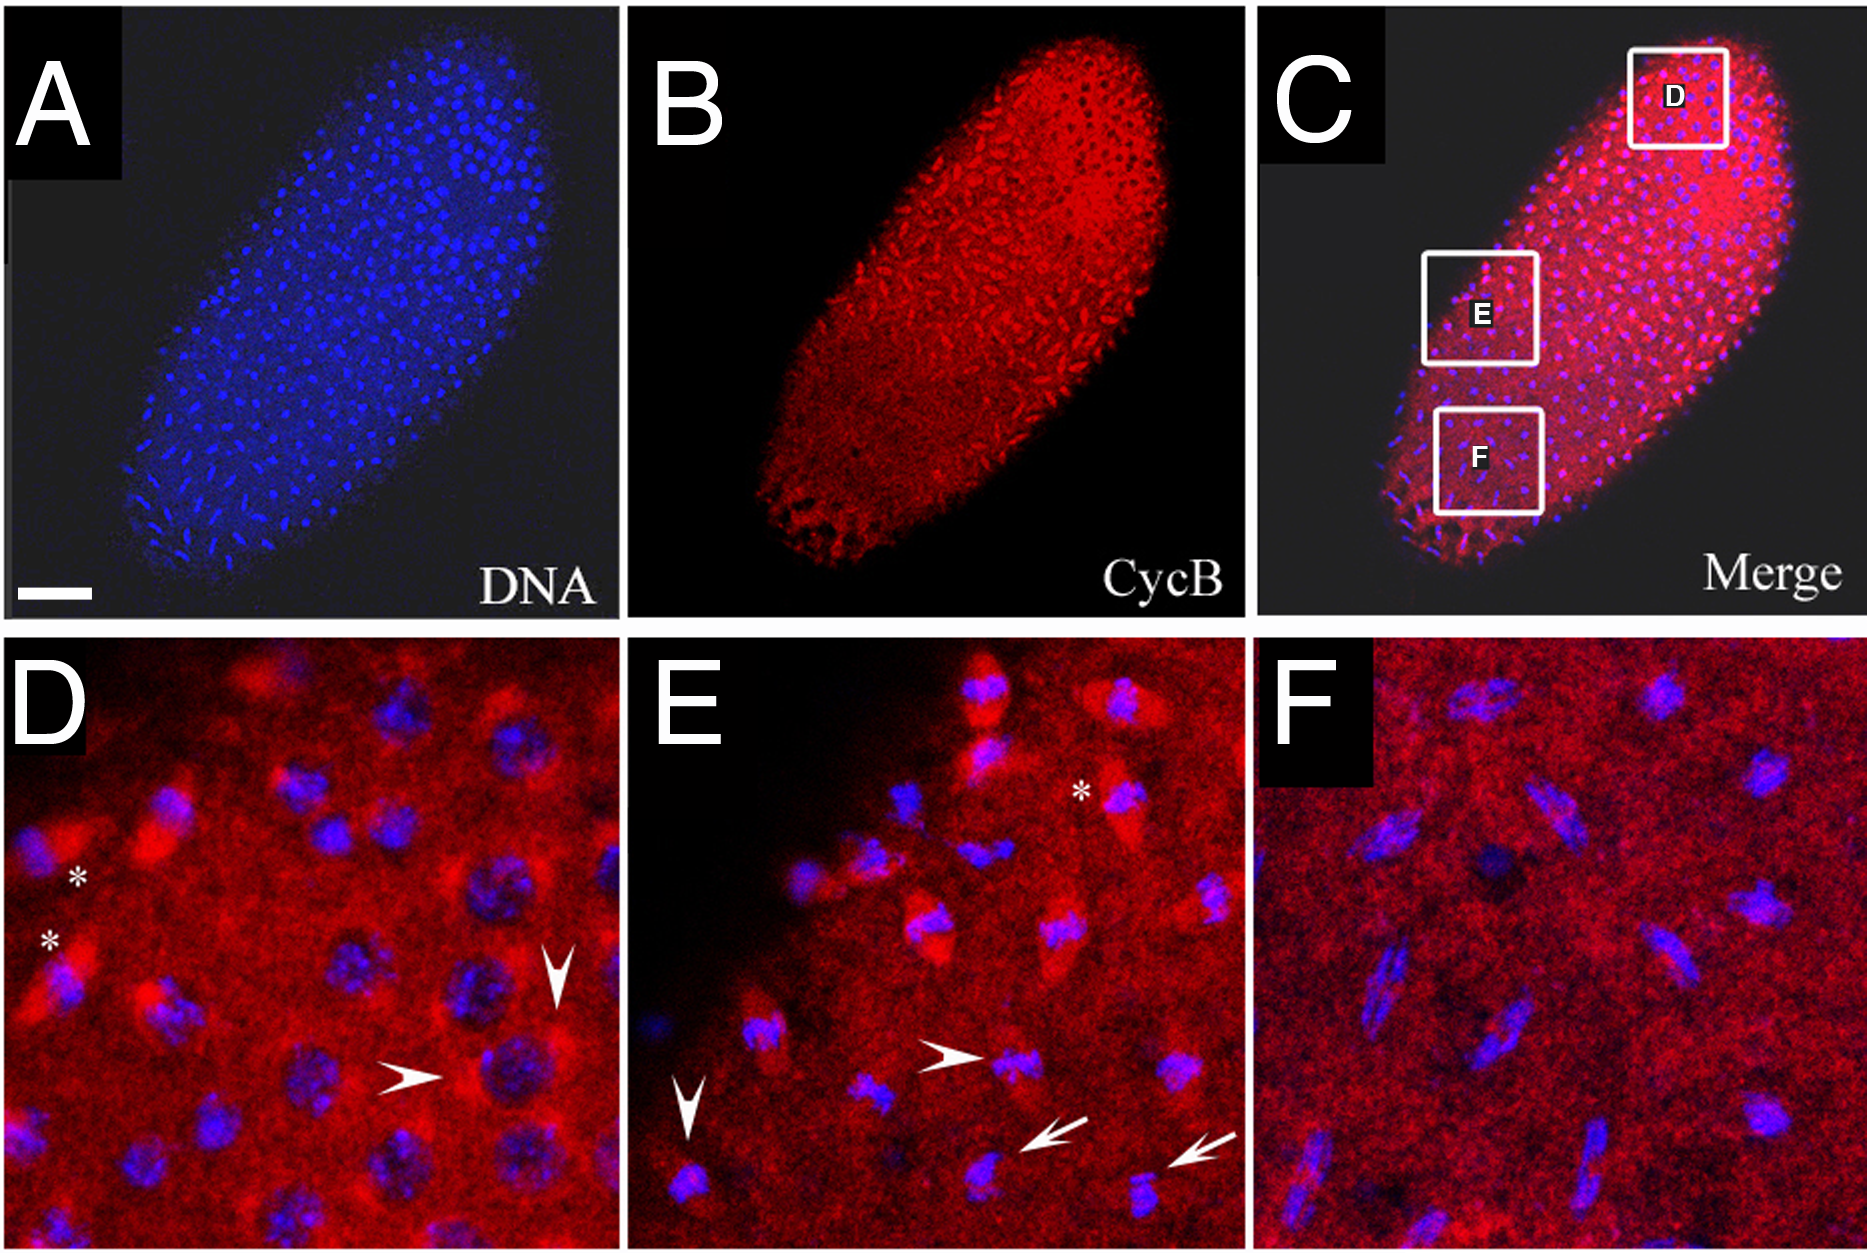 Cyclin B distribution in asynchronous mitoses of <i>xpd<sup>eE</sup></i> embryos.